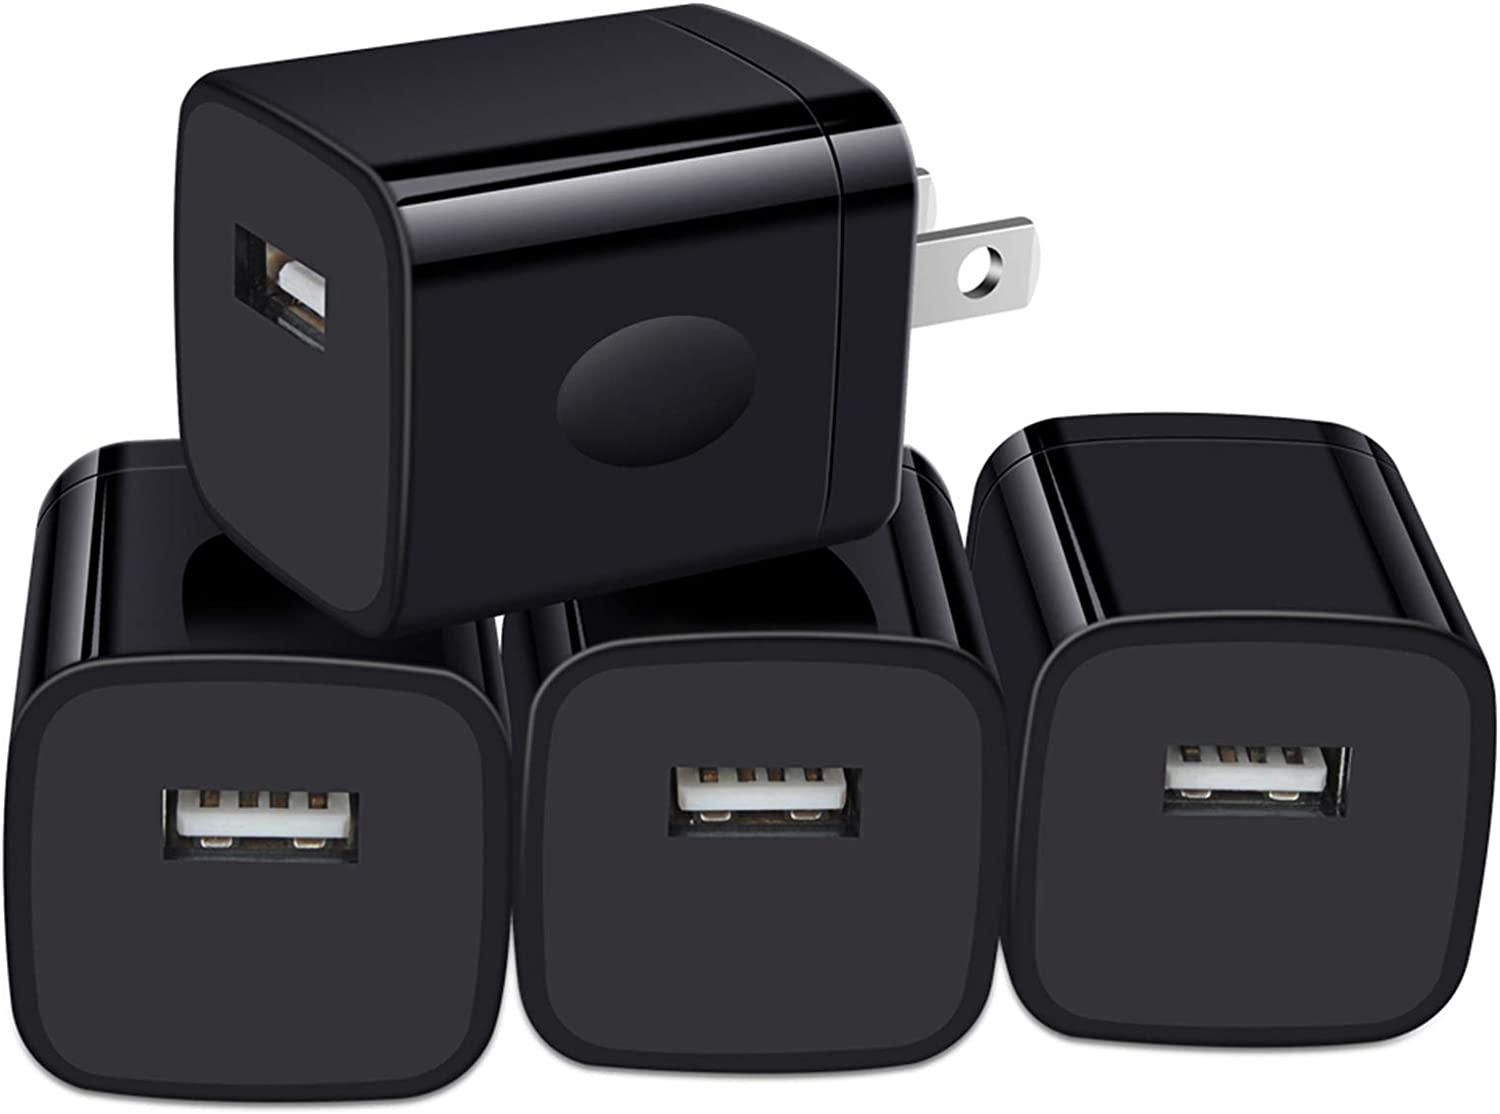 Charging Block for iPhone, USB Plug, Charger Box, Power Bricks, NonoUV 4-Pack 1-Port USB Wall Charger Cube Adapter for iPhone 12 11 Pro Max SE XR XS X 8/8 Plus 7/7 Plus 6/6 Plus 6s, Samsung, Android